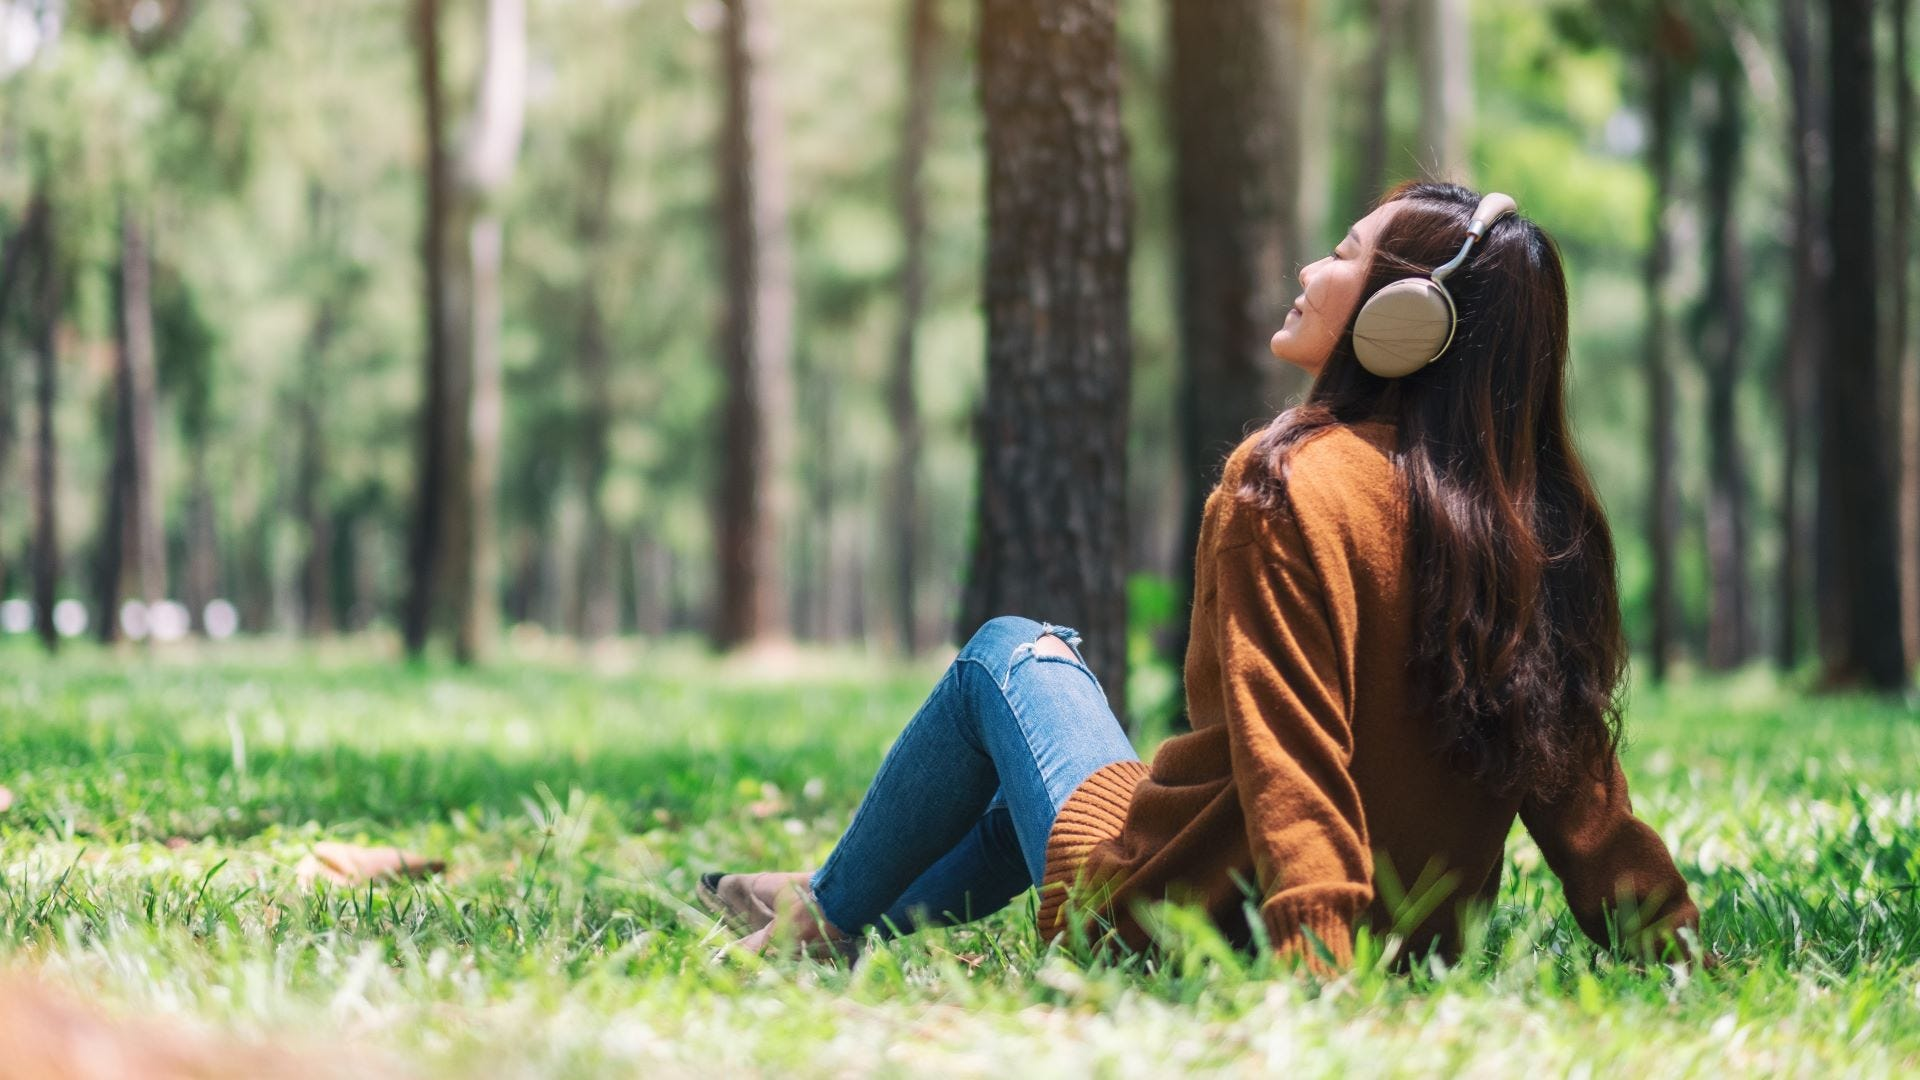 A young woman sitting on the grass in the park and listening to music on headphones.